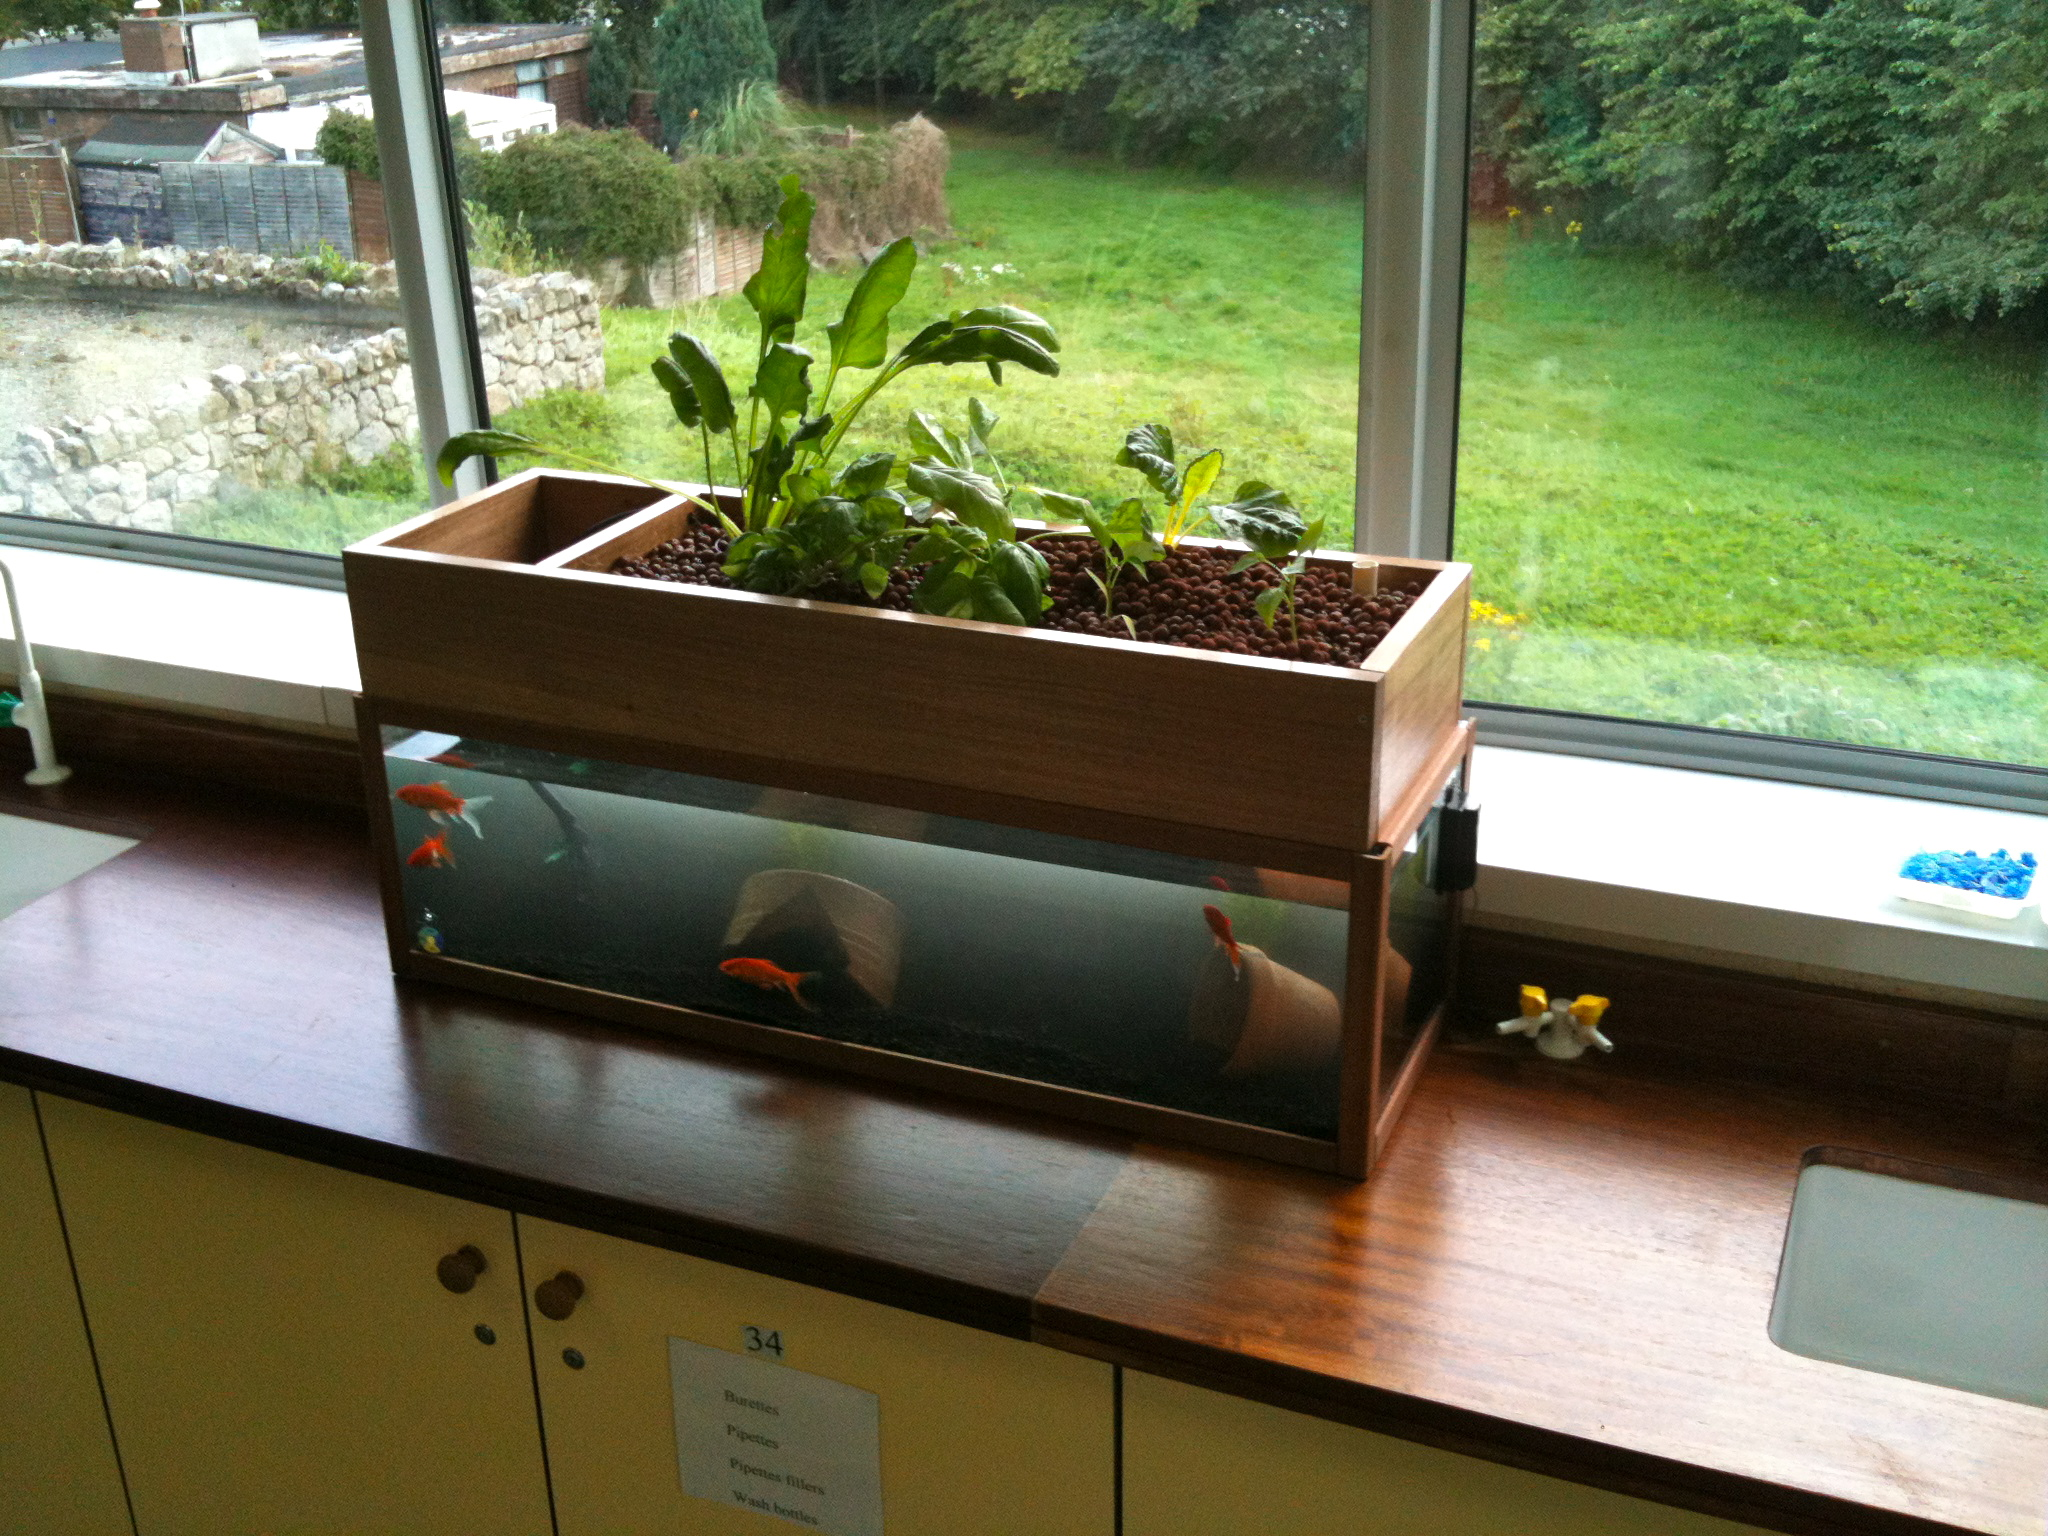 Classroom Breakfast Ideas ~ Lasalle secondary school classroom aquaponic project our